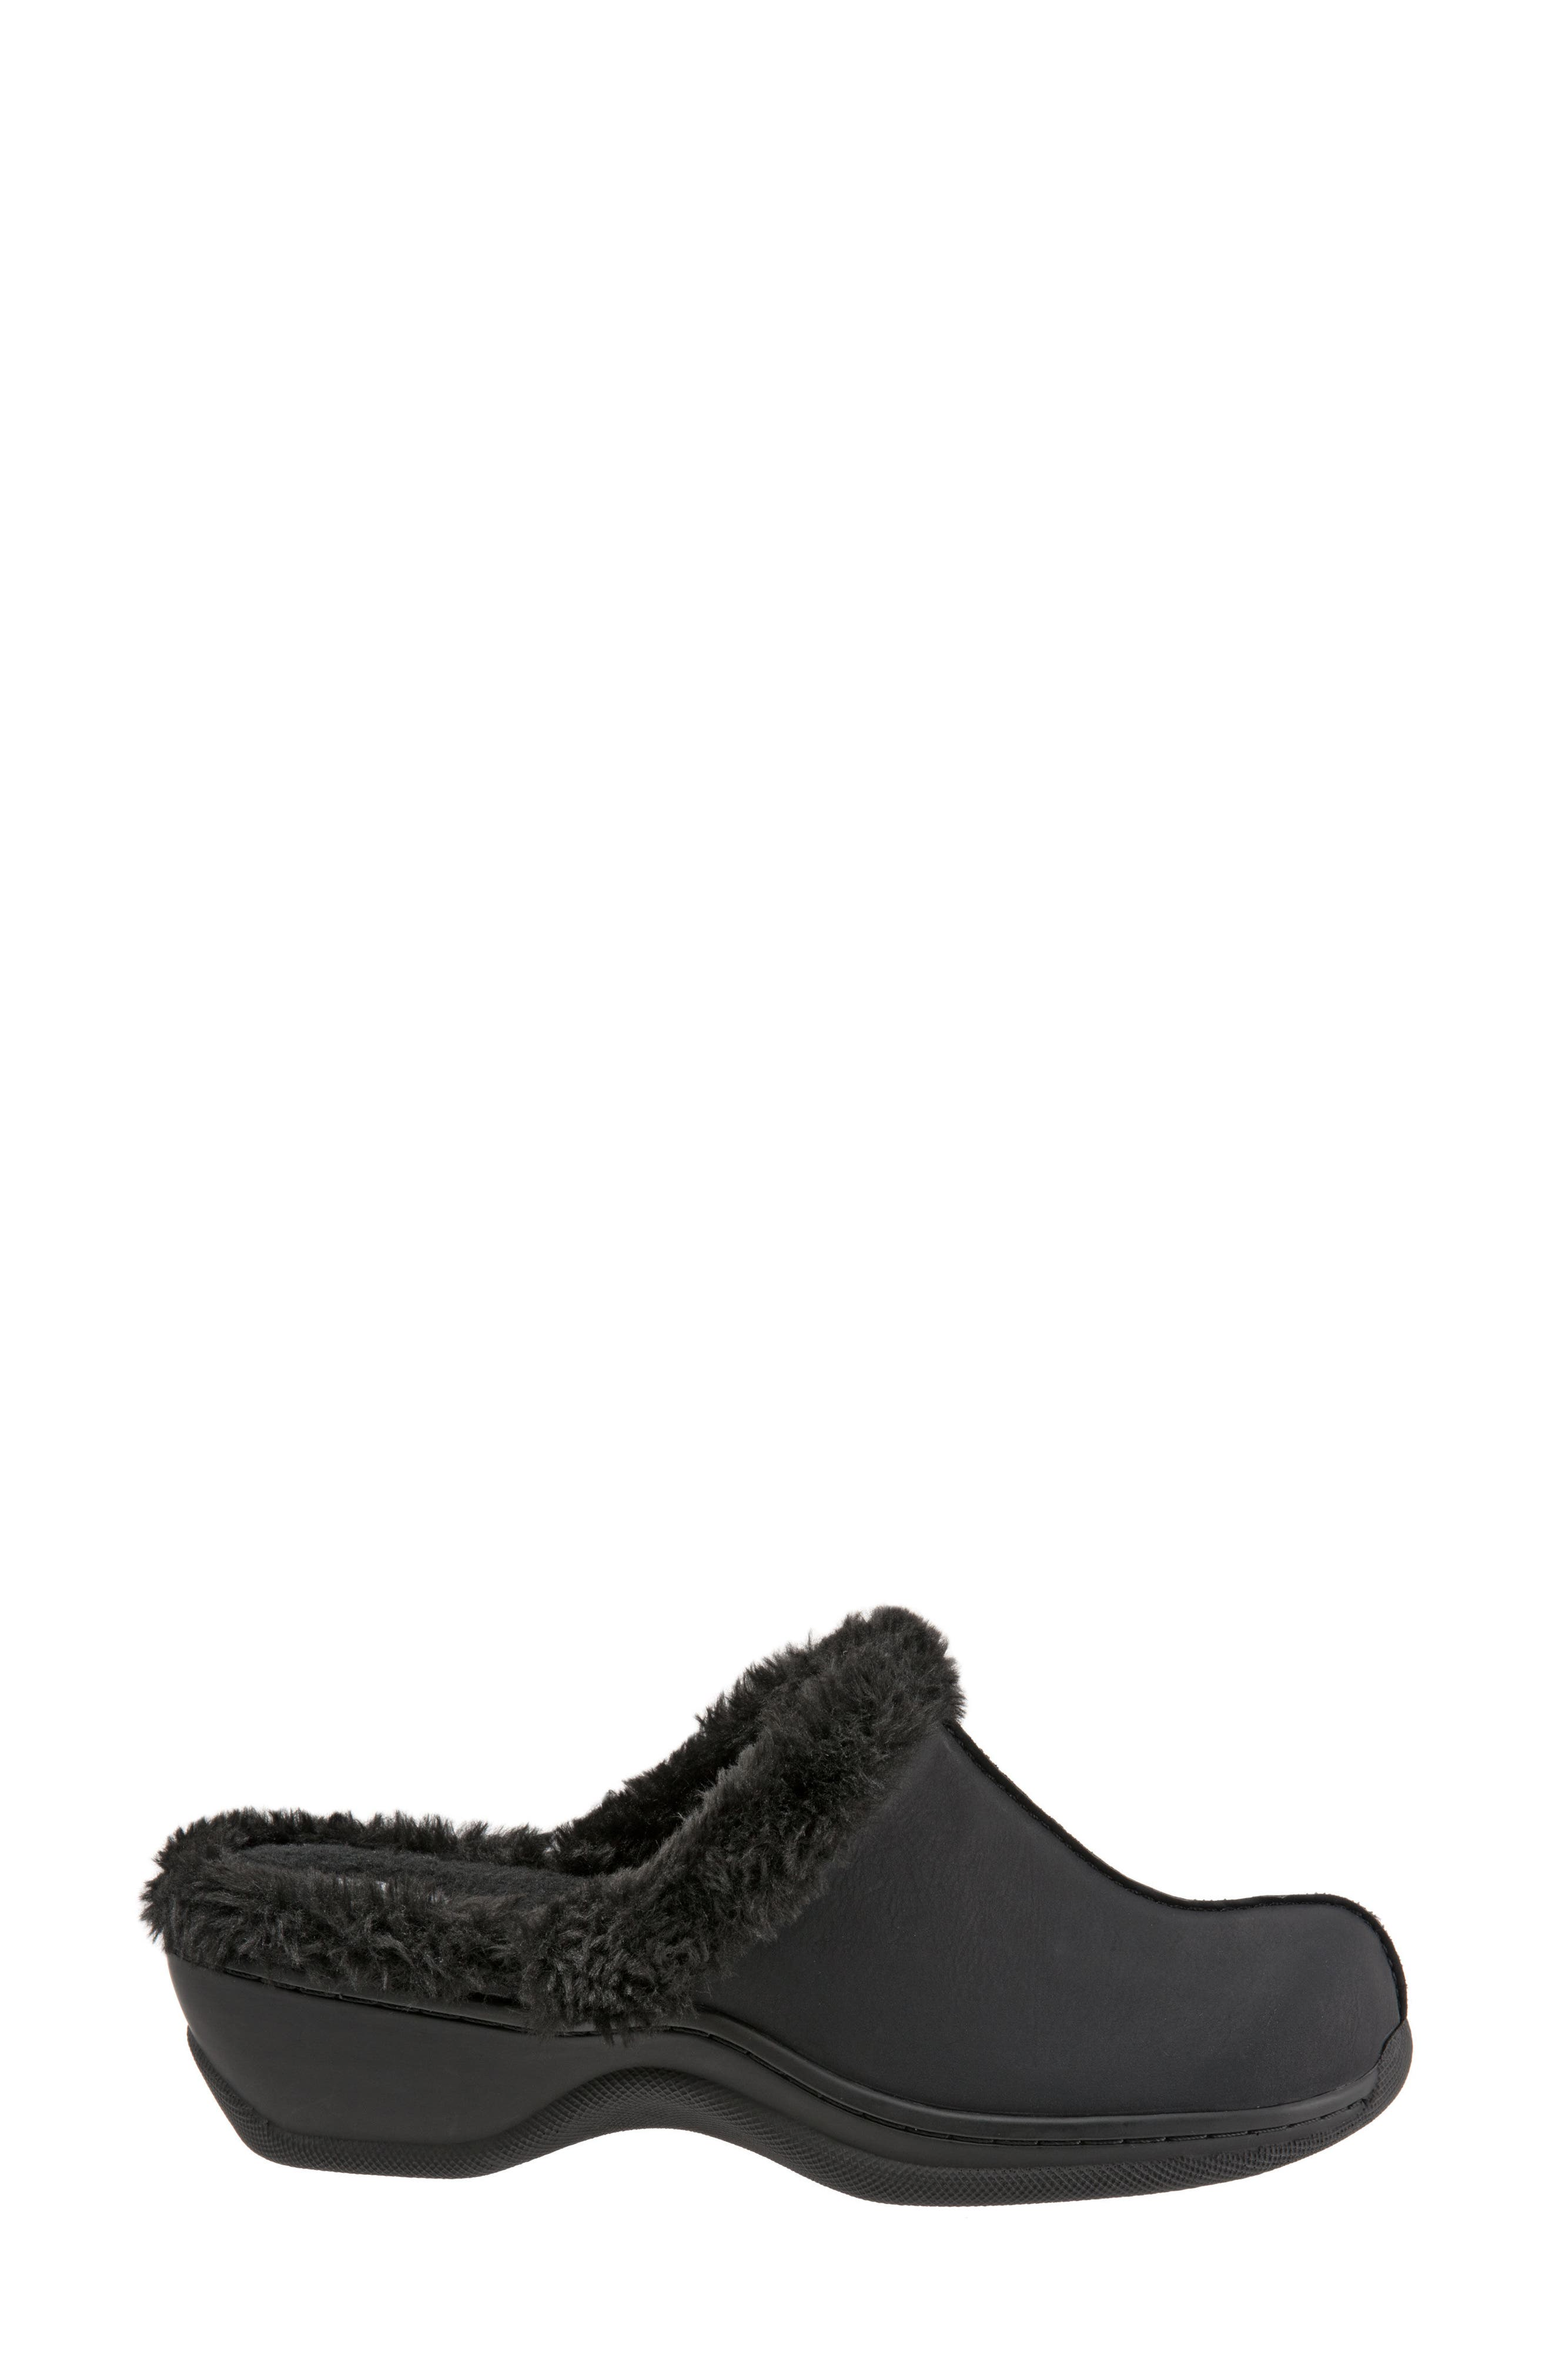 Abigail Clog with Faux Shearling Trim,                             Alternate thumbnail 3, color,                             004